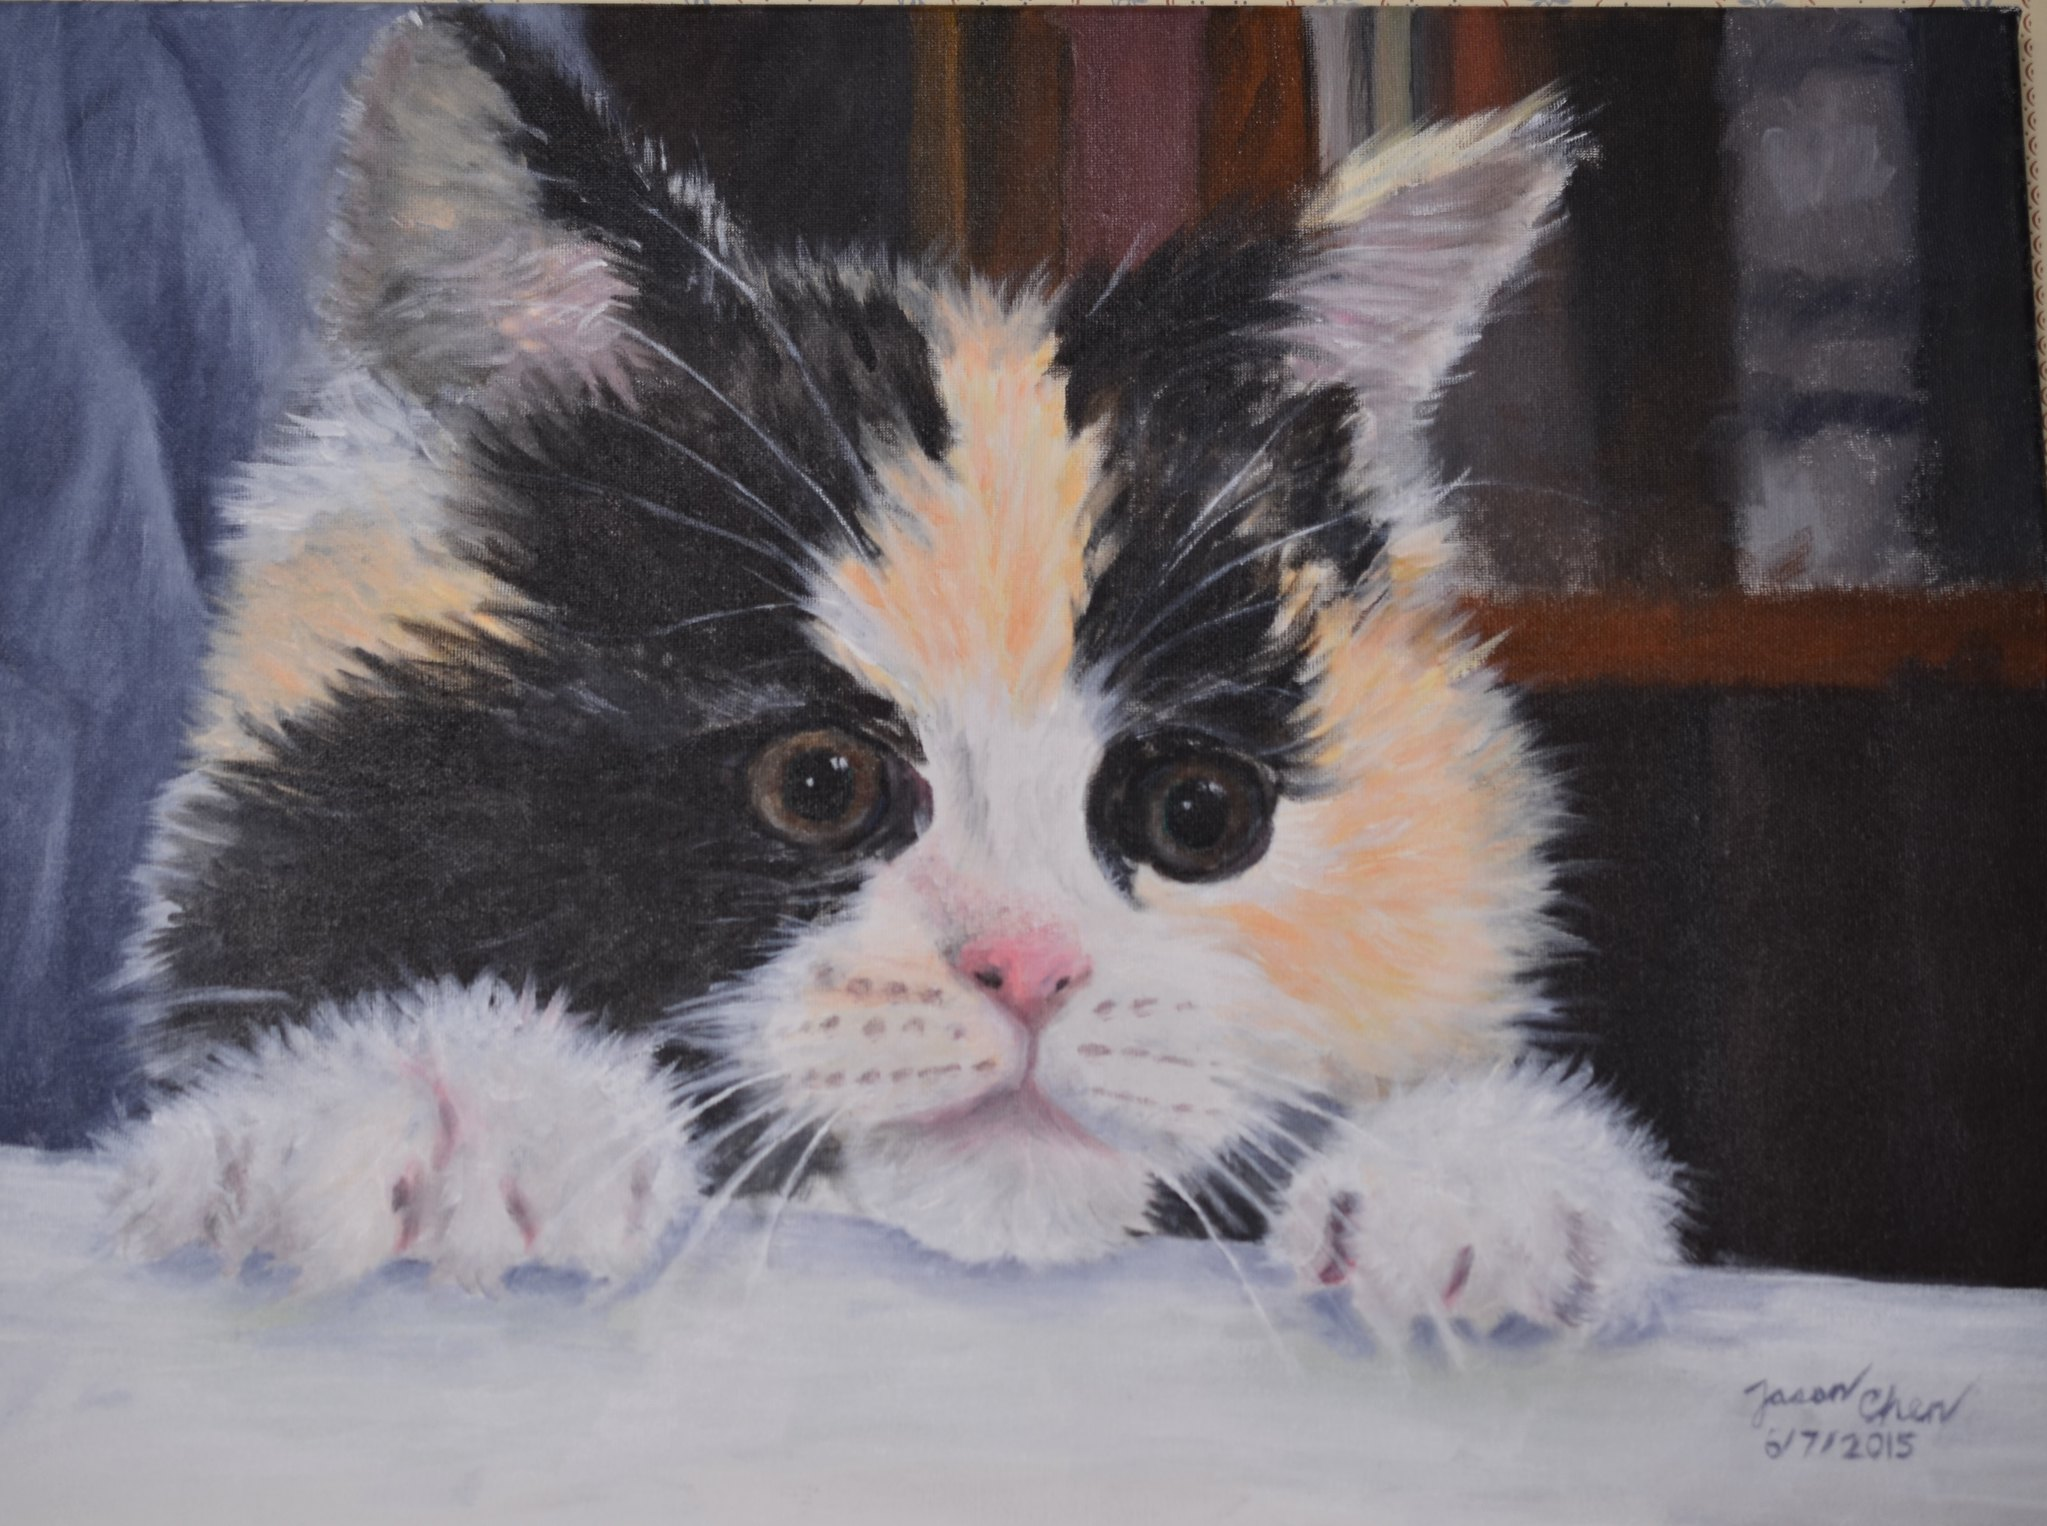 A painting (acrylic) of a cat, finished June 7, 12015